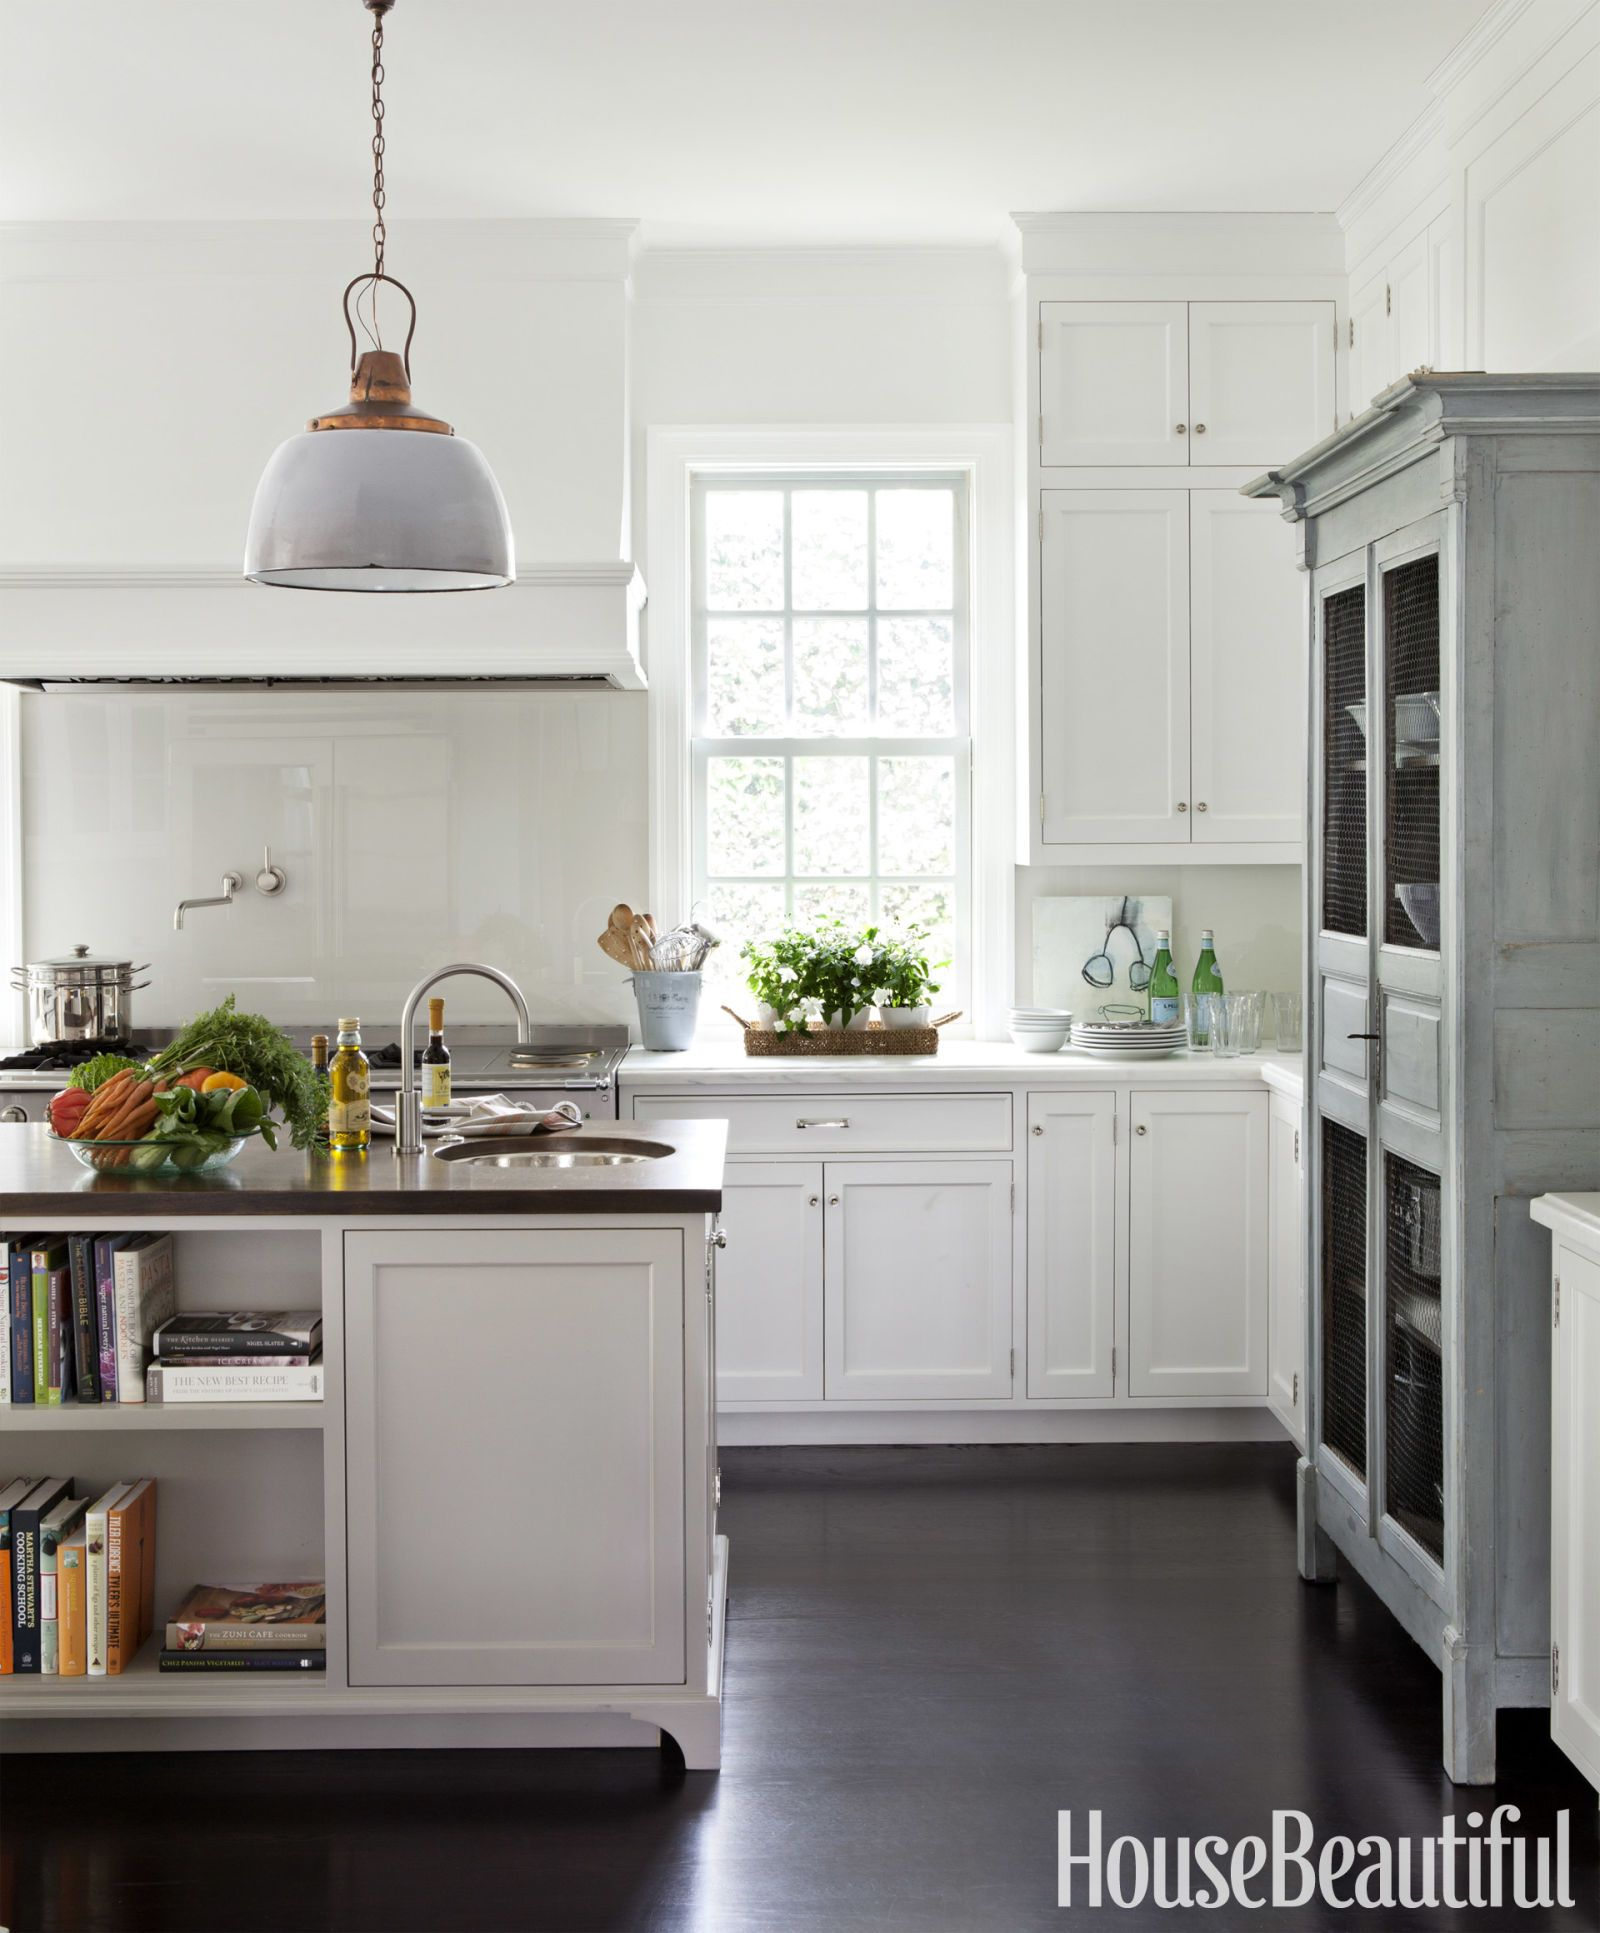 new fresh cupboard larder armoire of you will best goals pantries organization kitchens beautiful pinterest give that cabinets kitchen